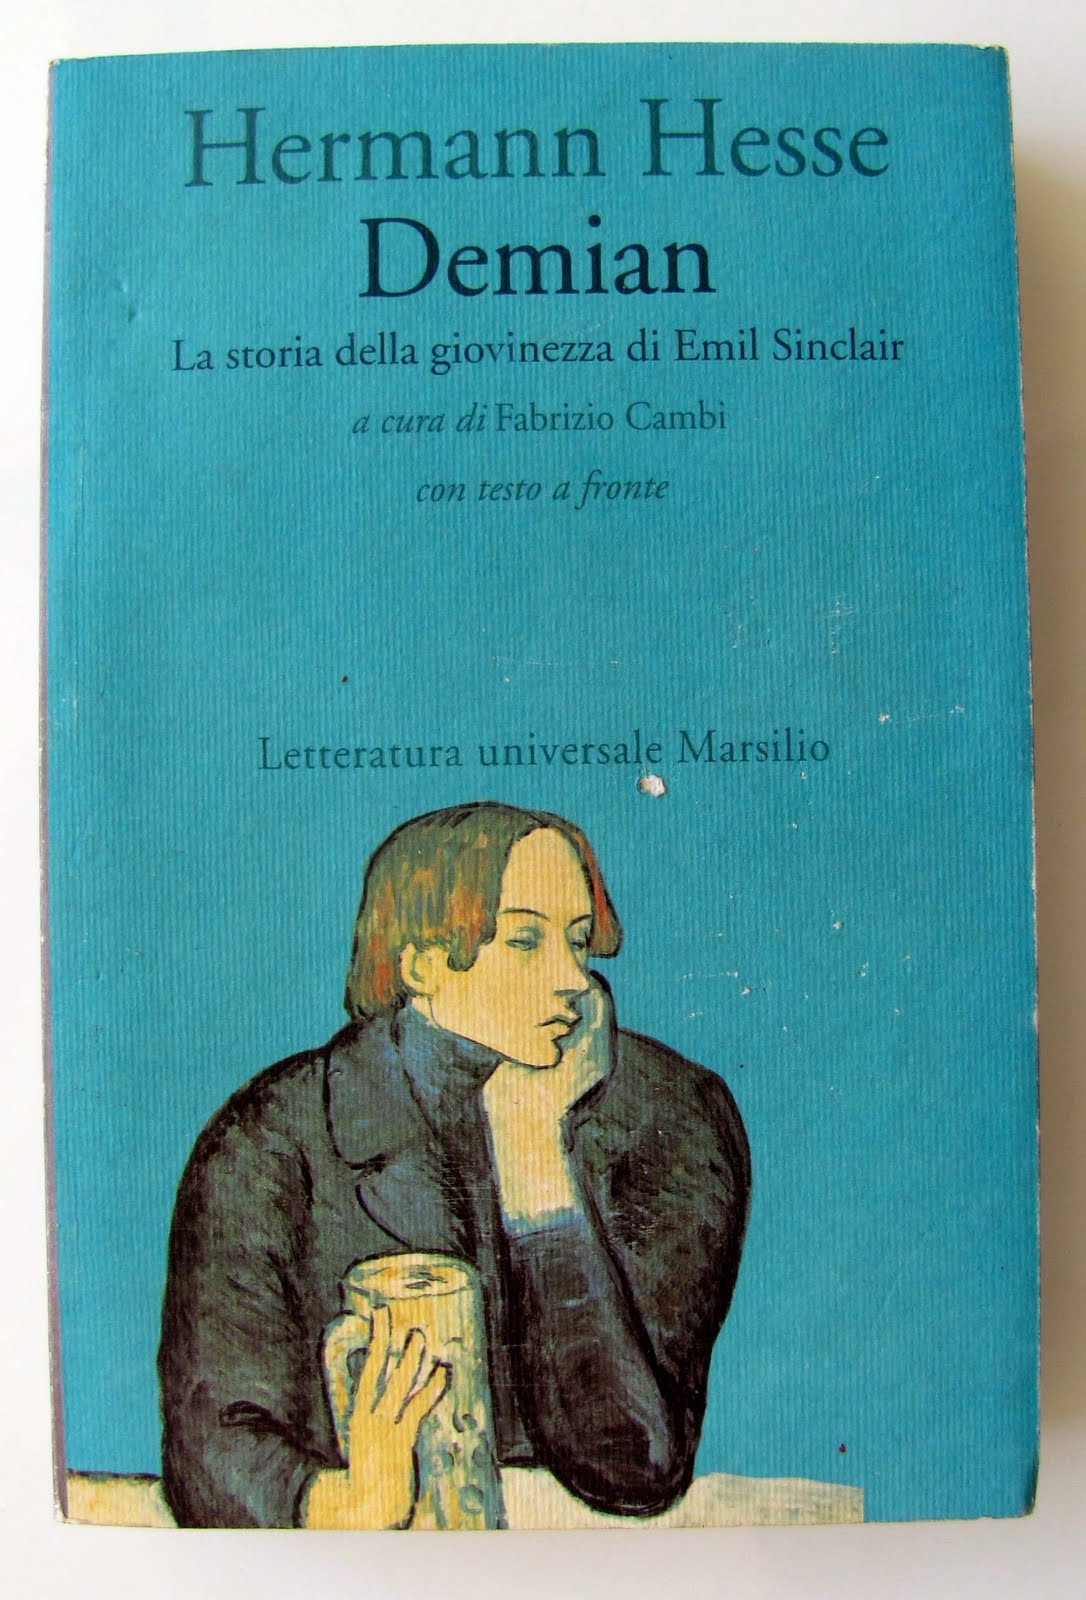 demian hermann hesse essay topics Essays and criticism on hermann hesse's demian - demian in this novel of development, hesse writes a confessional novel about the struggles of emil sinclair, a sensitive young minister's son.